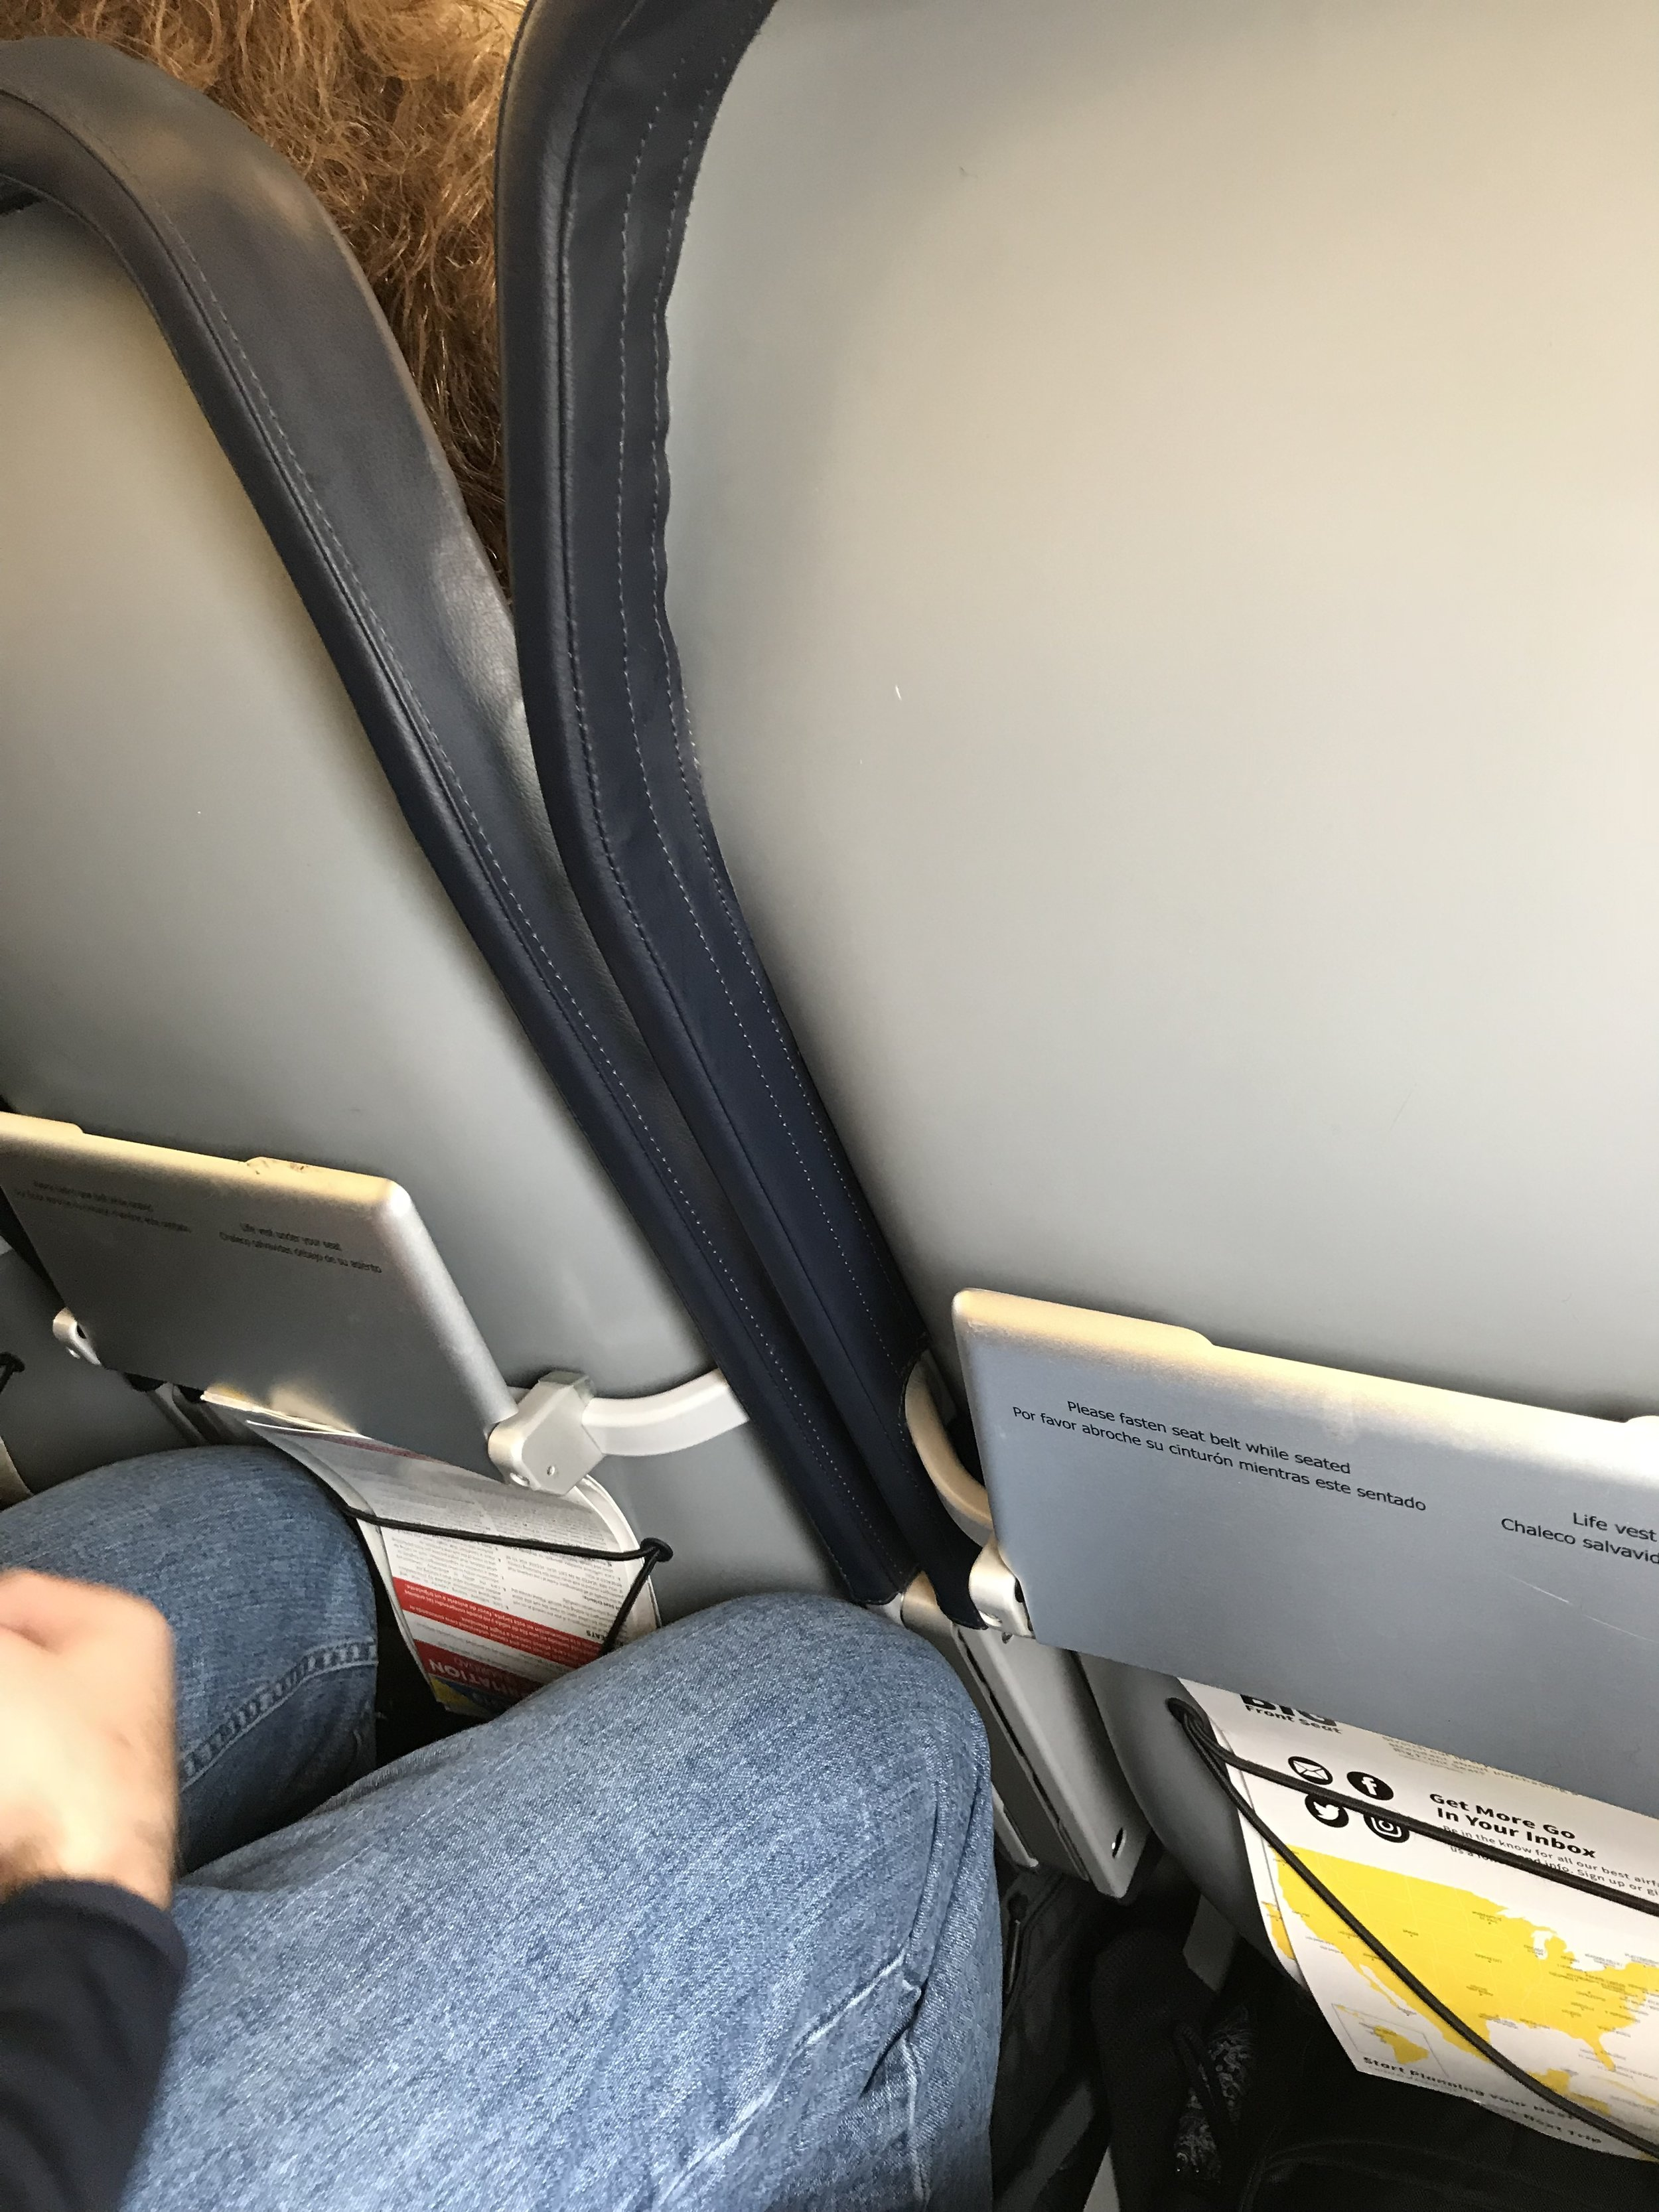 Thin cloth over a metal seat